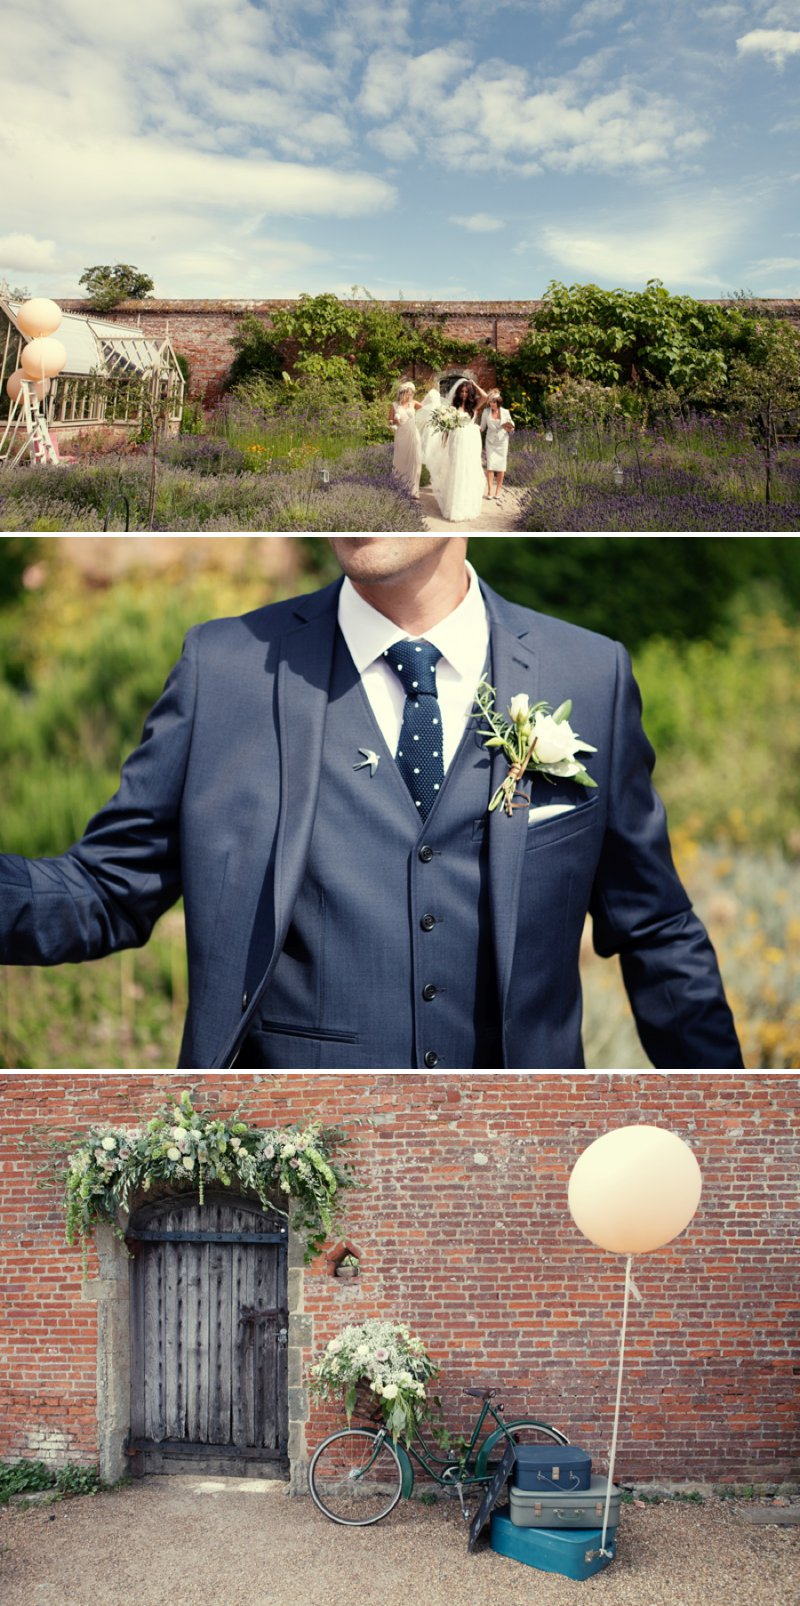 Stylish Wedding At The Walled Garden Cowdray With Bride In San Patrick Dress And Jimmy Choo Shoes And A Malene Birger Sequinned Jacket And Groom In Navy Suit From Topman 1 The Modern Love Letter.